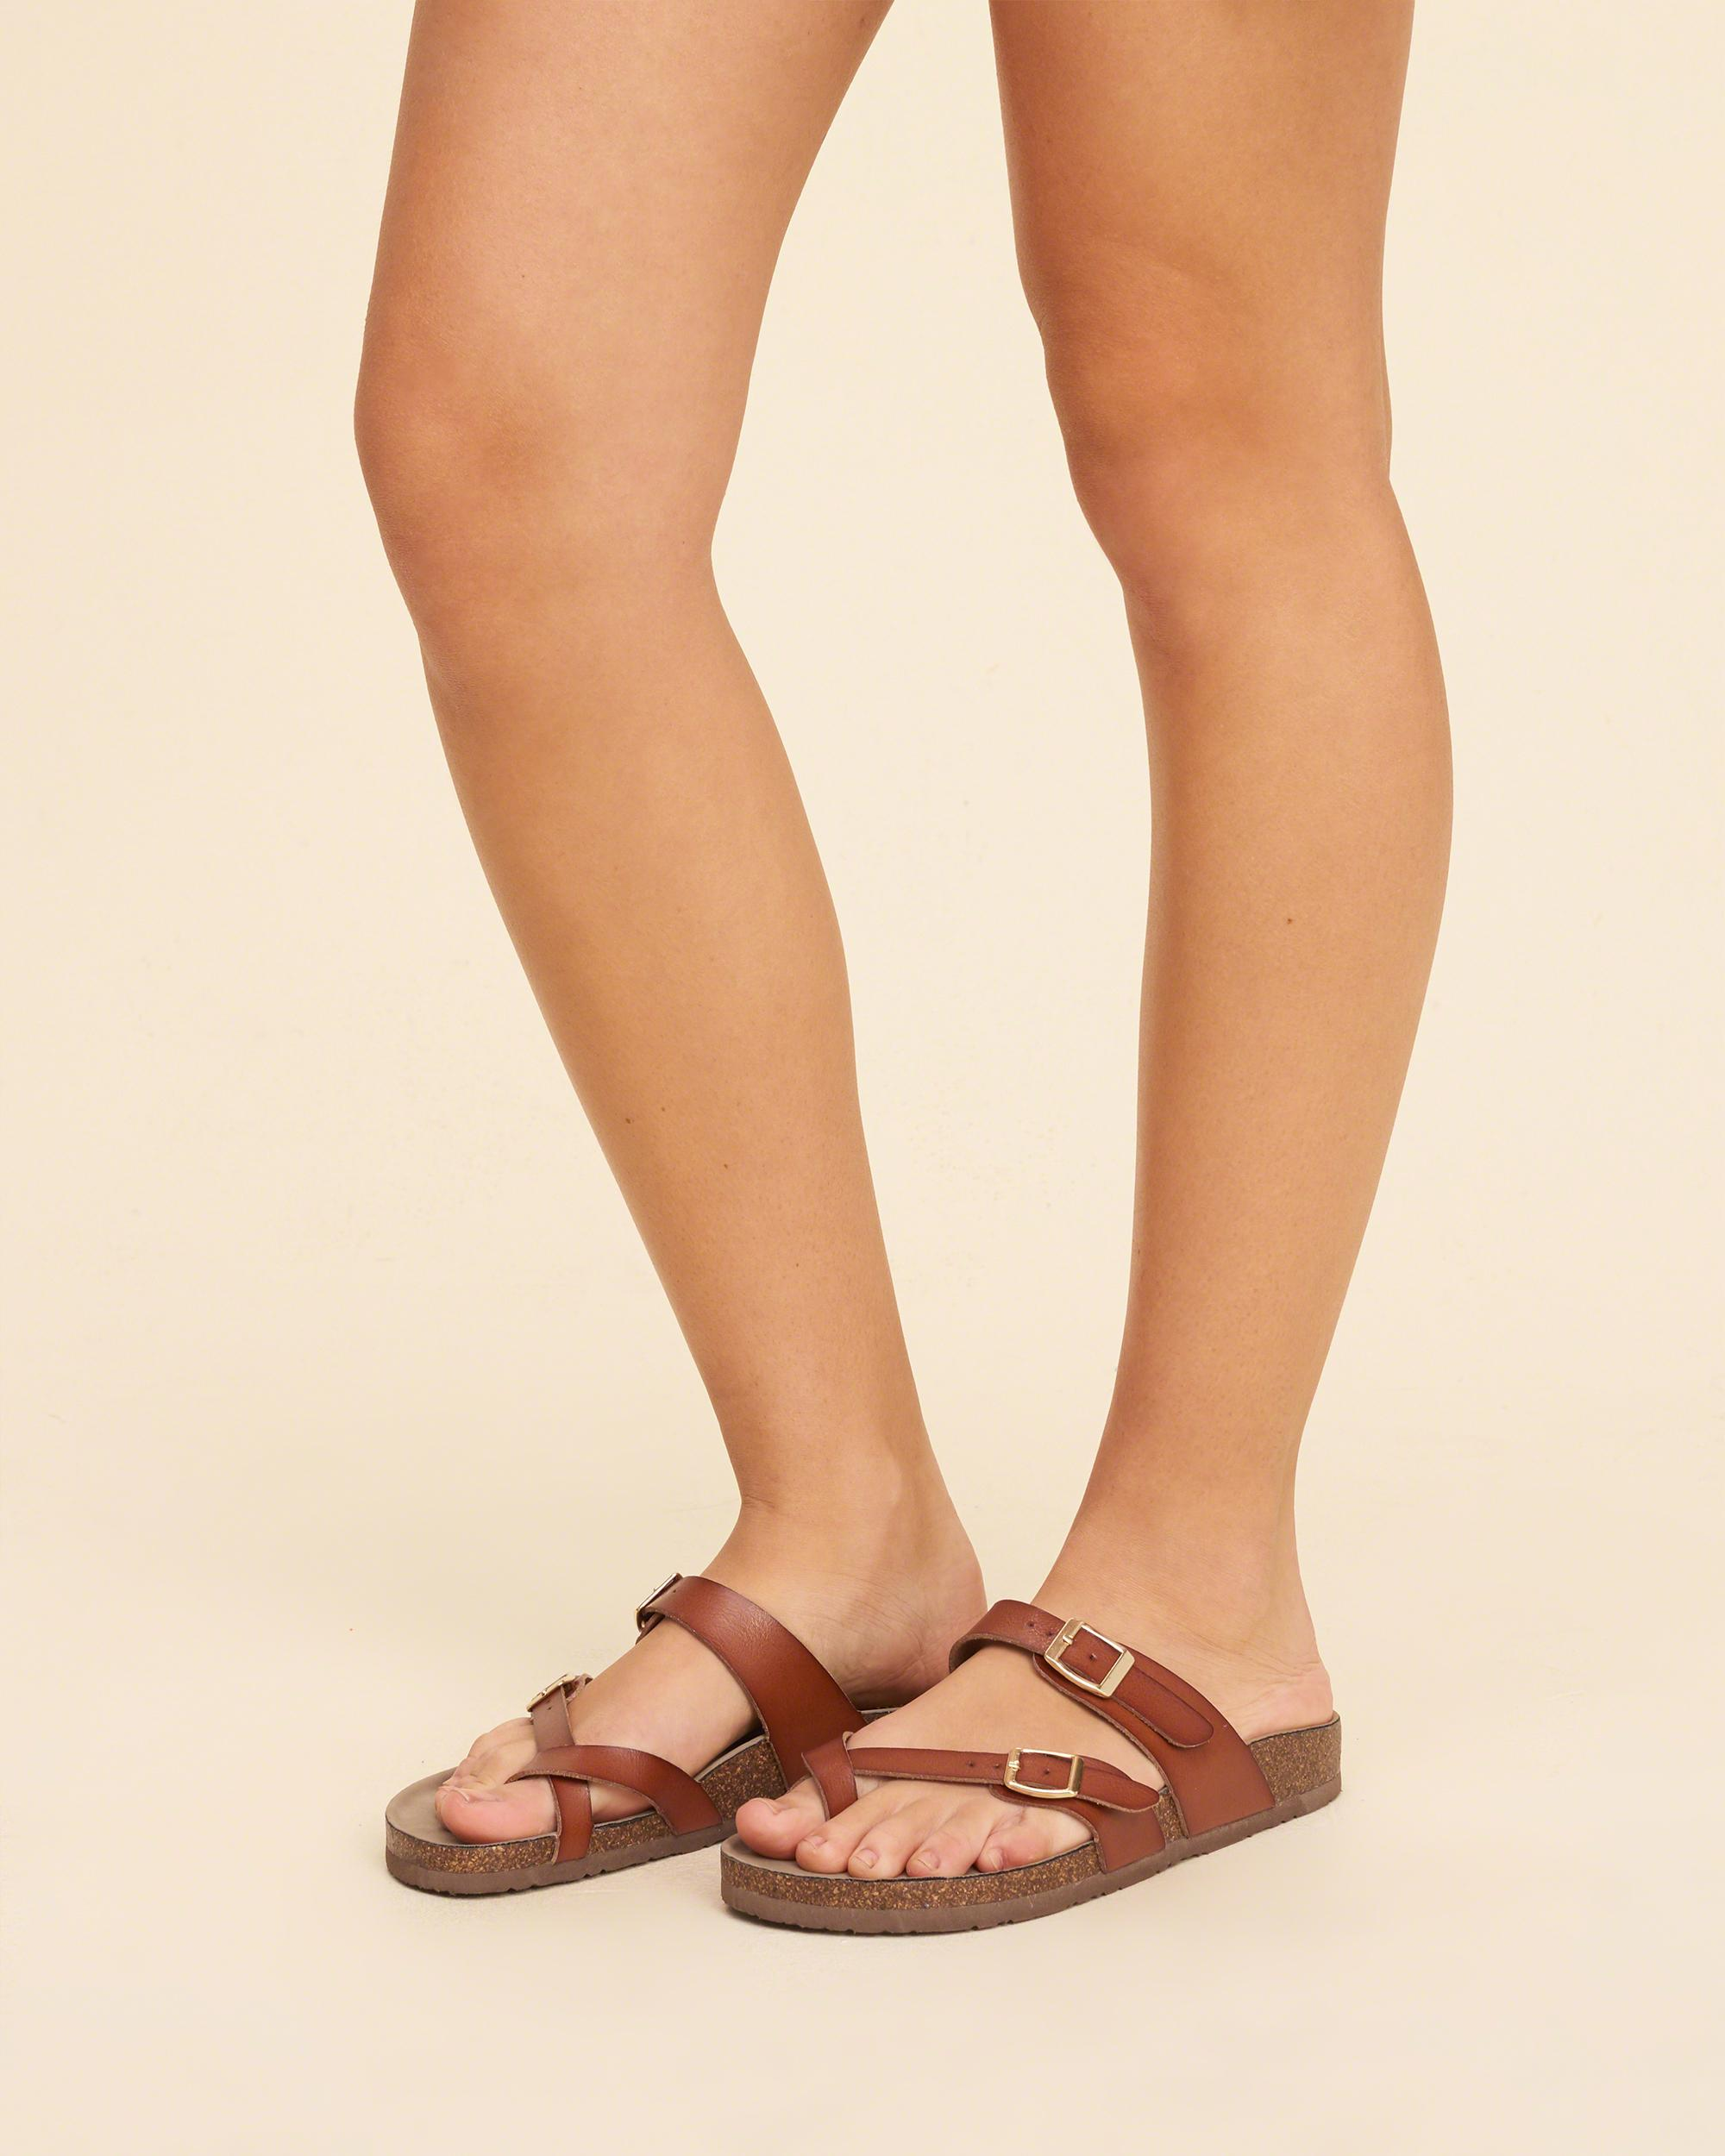 01e53c7ab829 Hollister Madden Girl Bryceee Sandal in Brown - Lyst